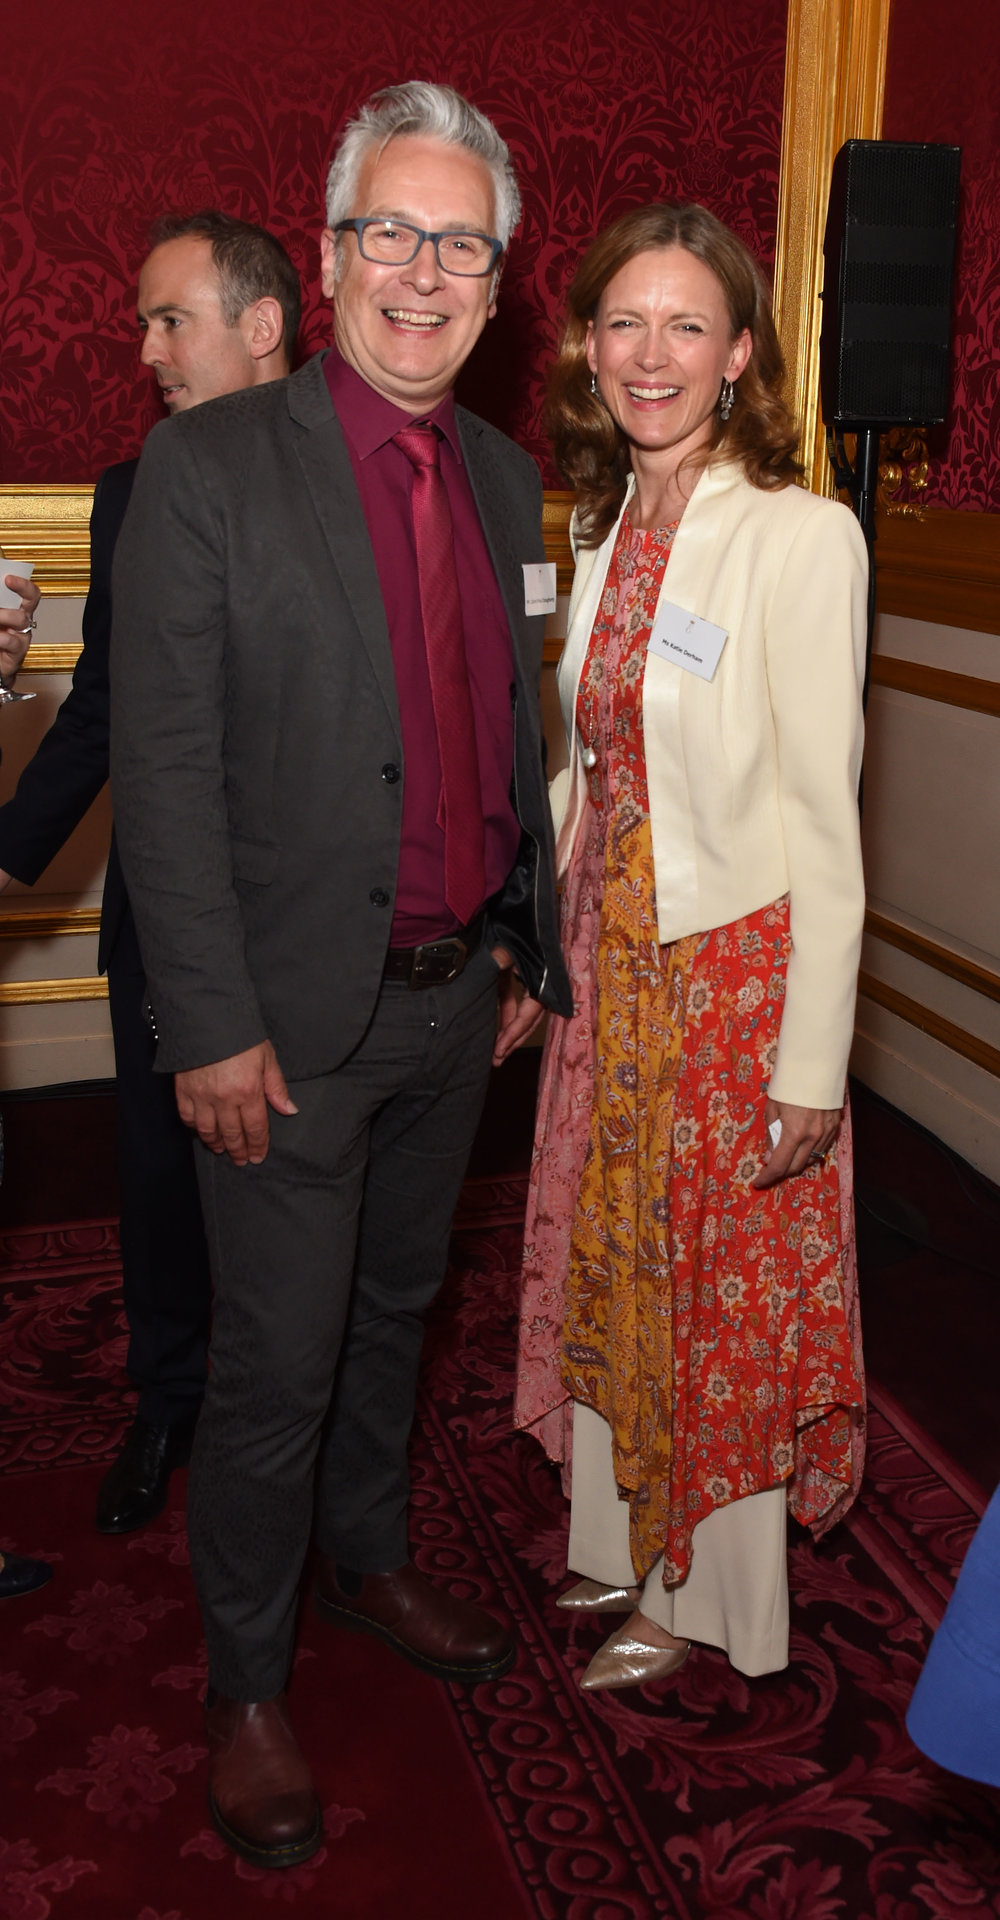 Oscar's Book Prize 2018 winner John Dougherty with prize judge and BBC presenter Katie Derham. Image: Dave Benett